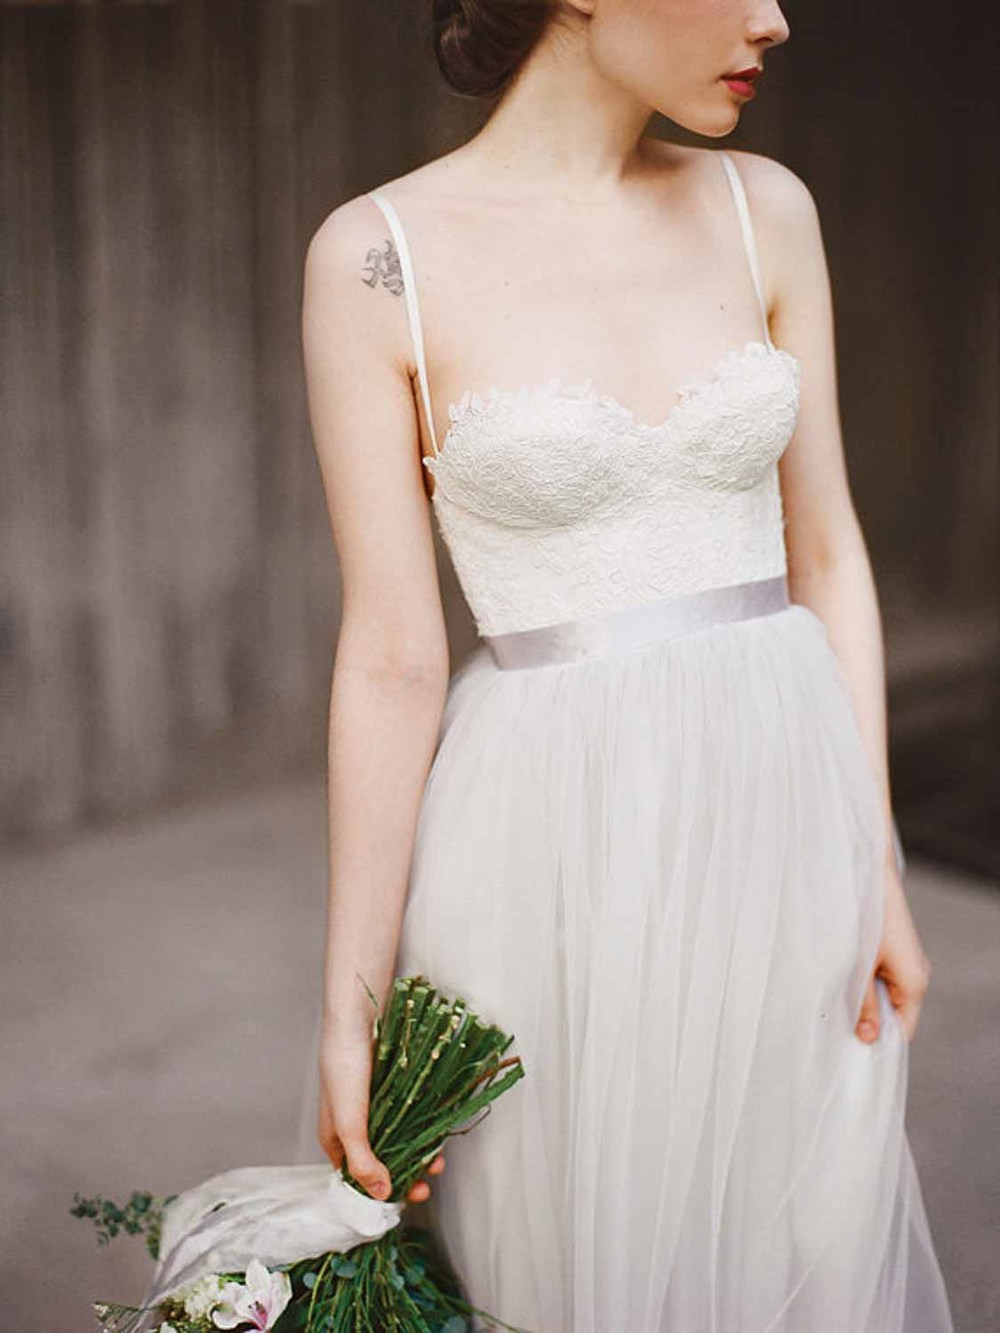 12 etsy boho wedding dresses with spaghetti straps — the bohemian